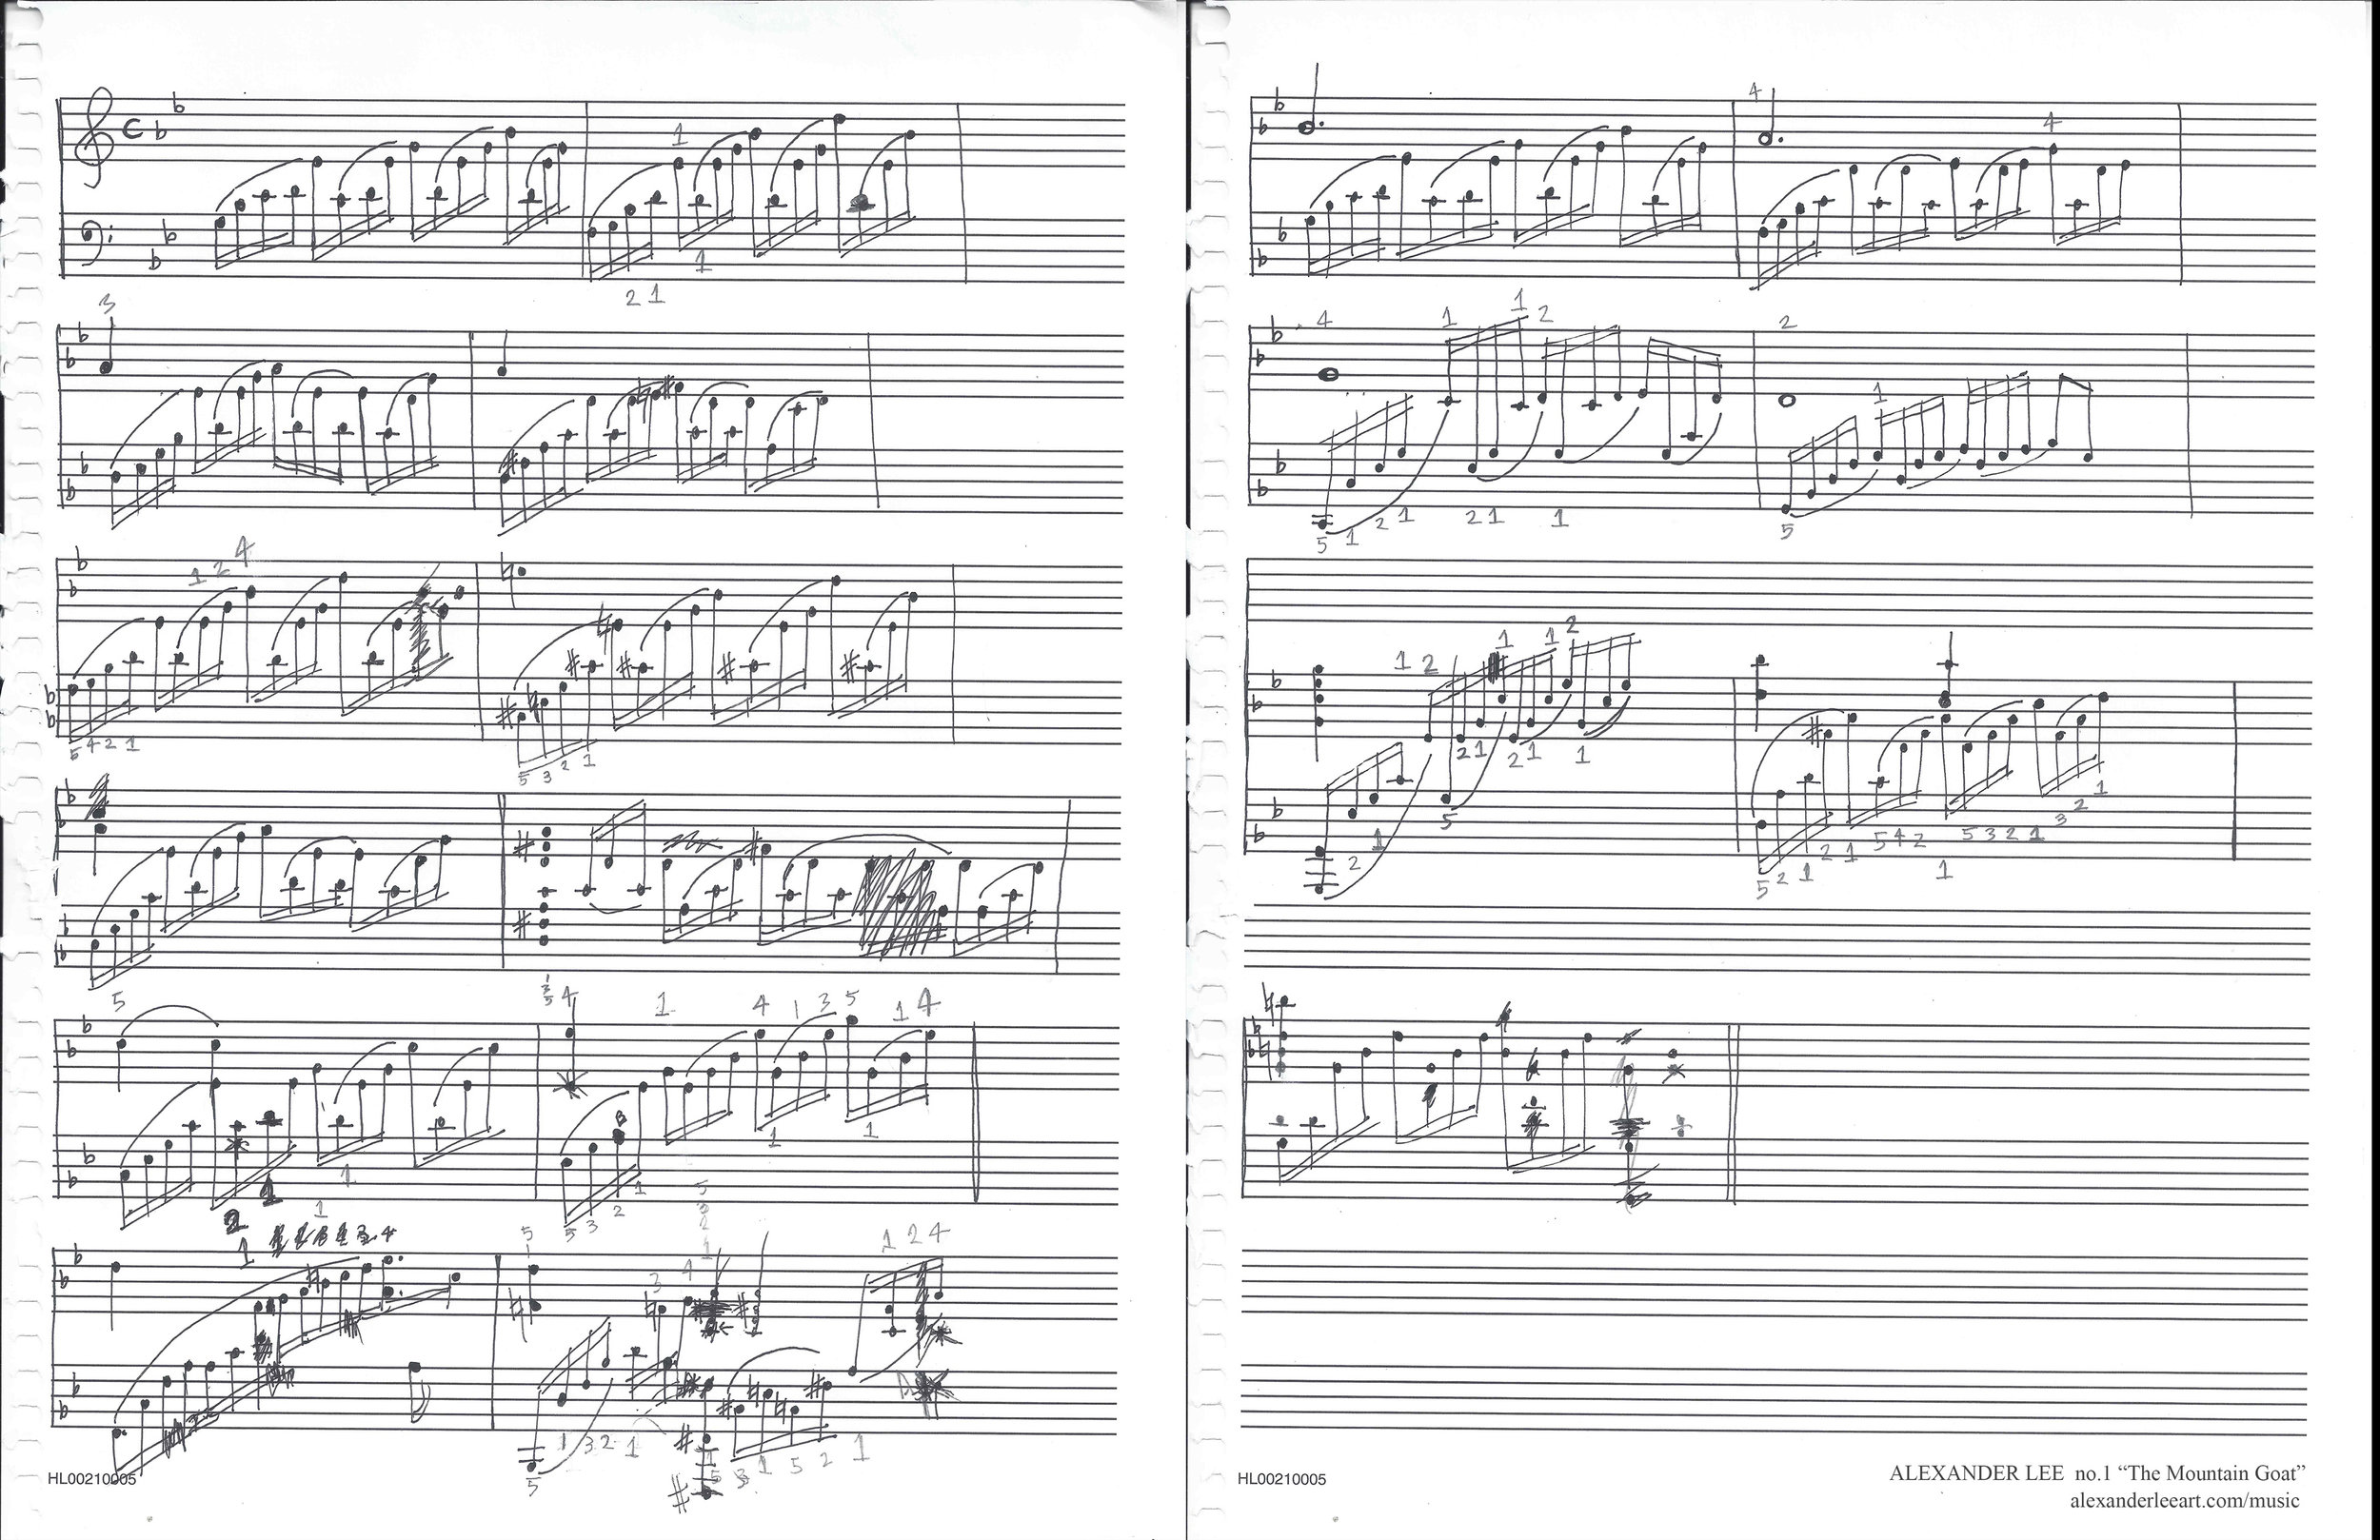 sheetMusic_final_02.jpg